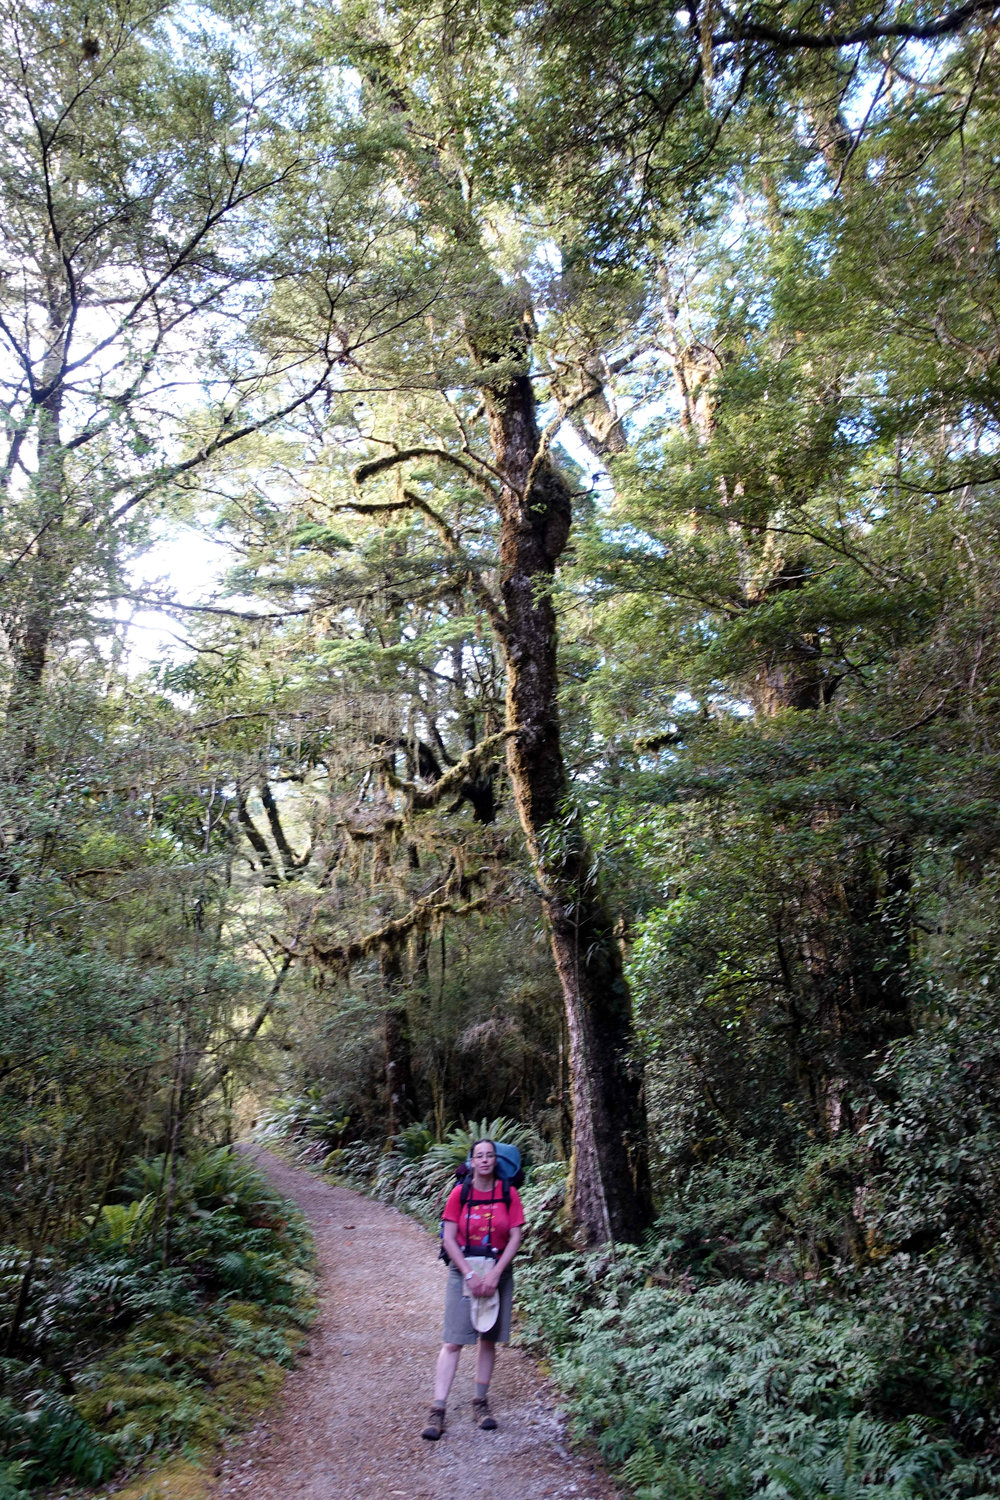 Julianne surronded by South Island Beech forest